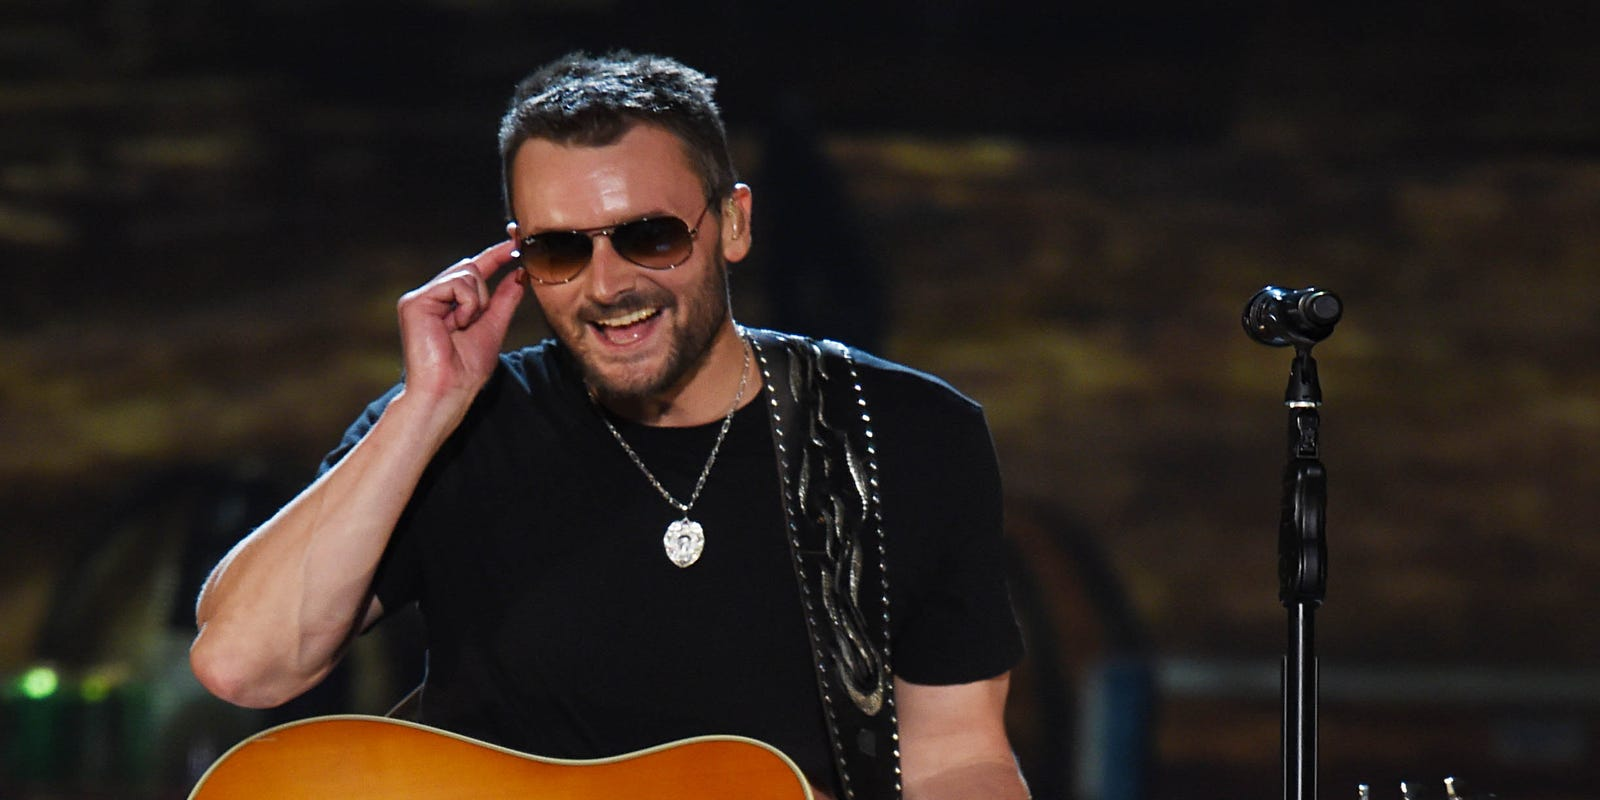 Eric Church, Chris Stapleton lead ACM nominations